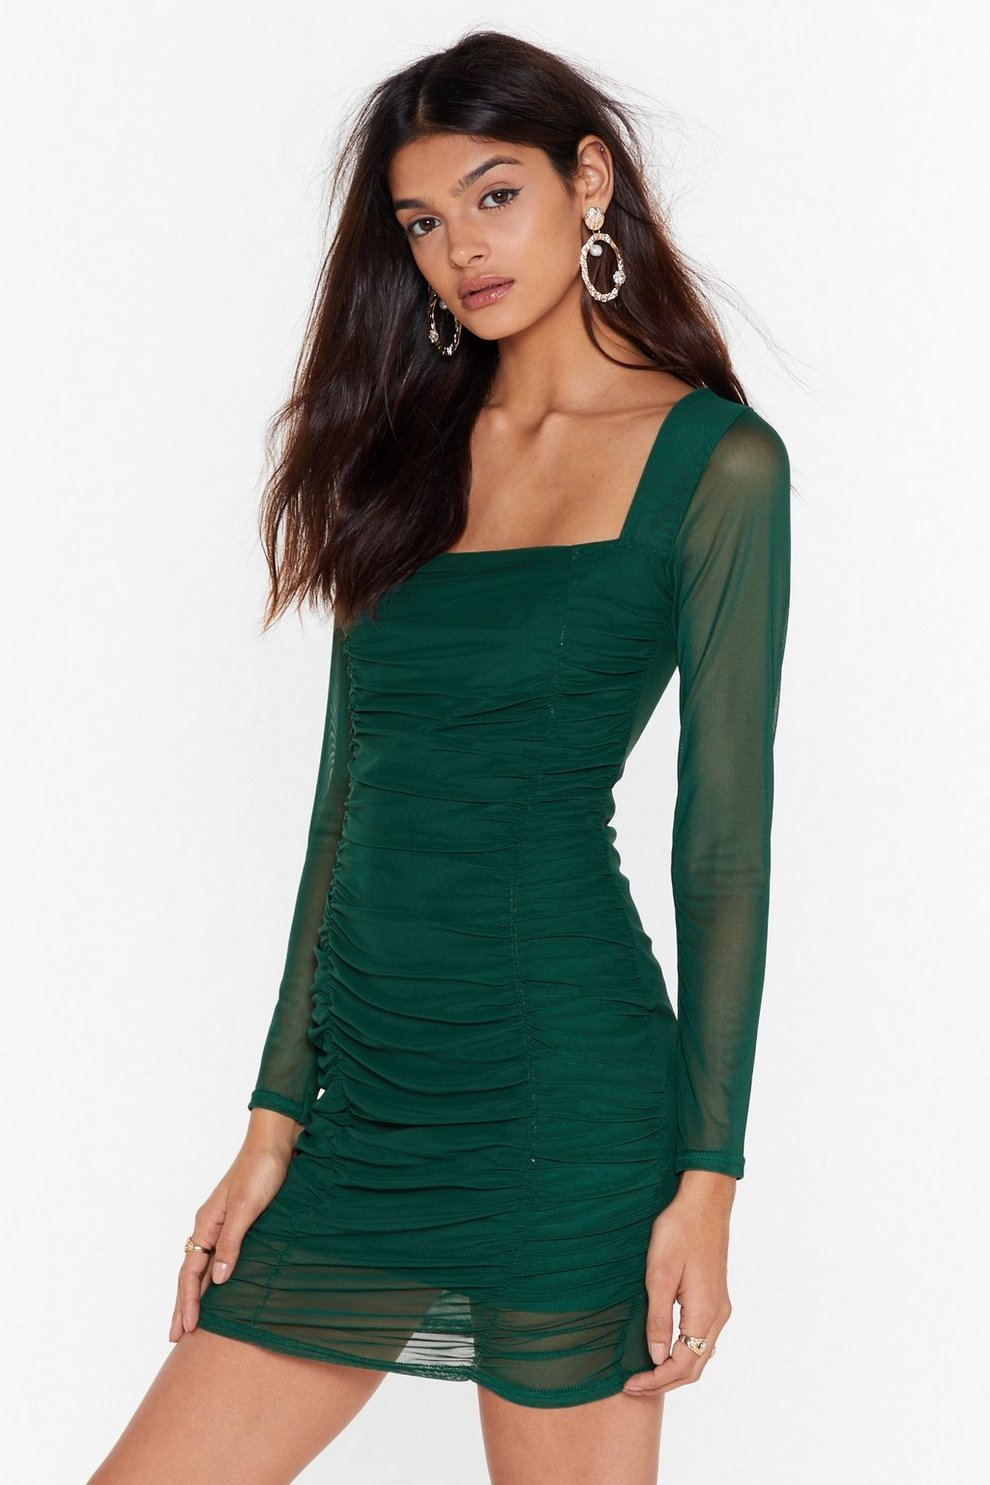 7013d6e6d3bfb On Our Mesh Behaviour Ruched Mini Dress   Shop Clothes at Nasty Gal!